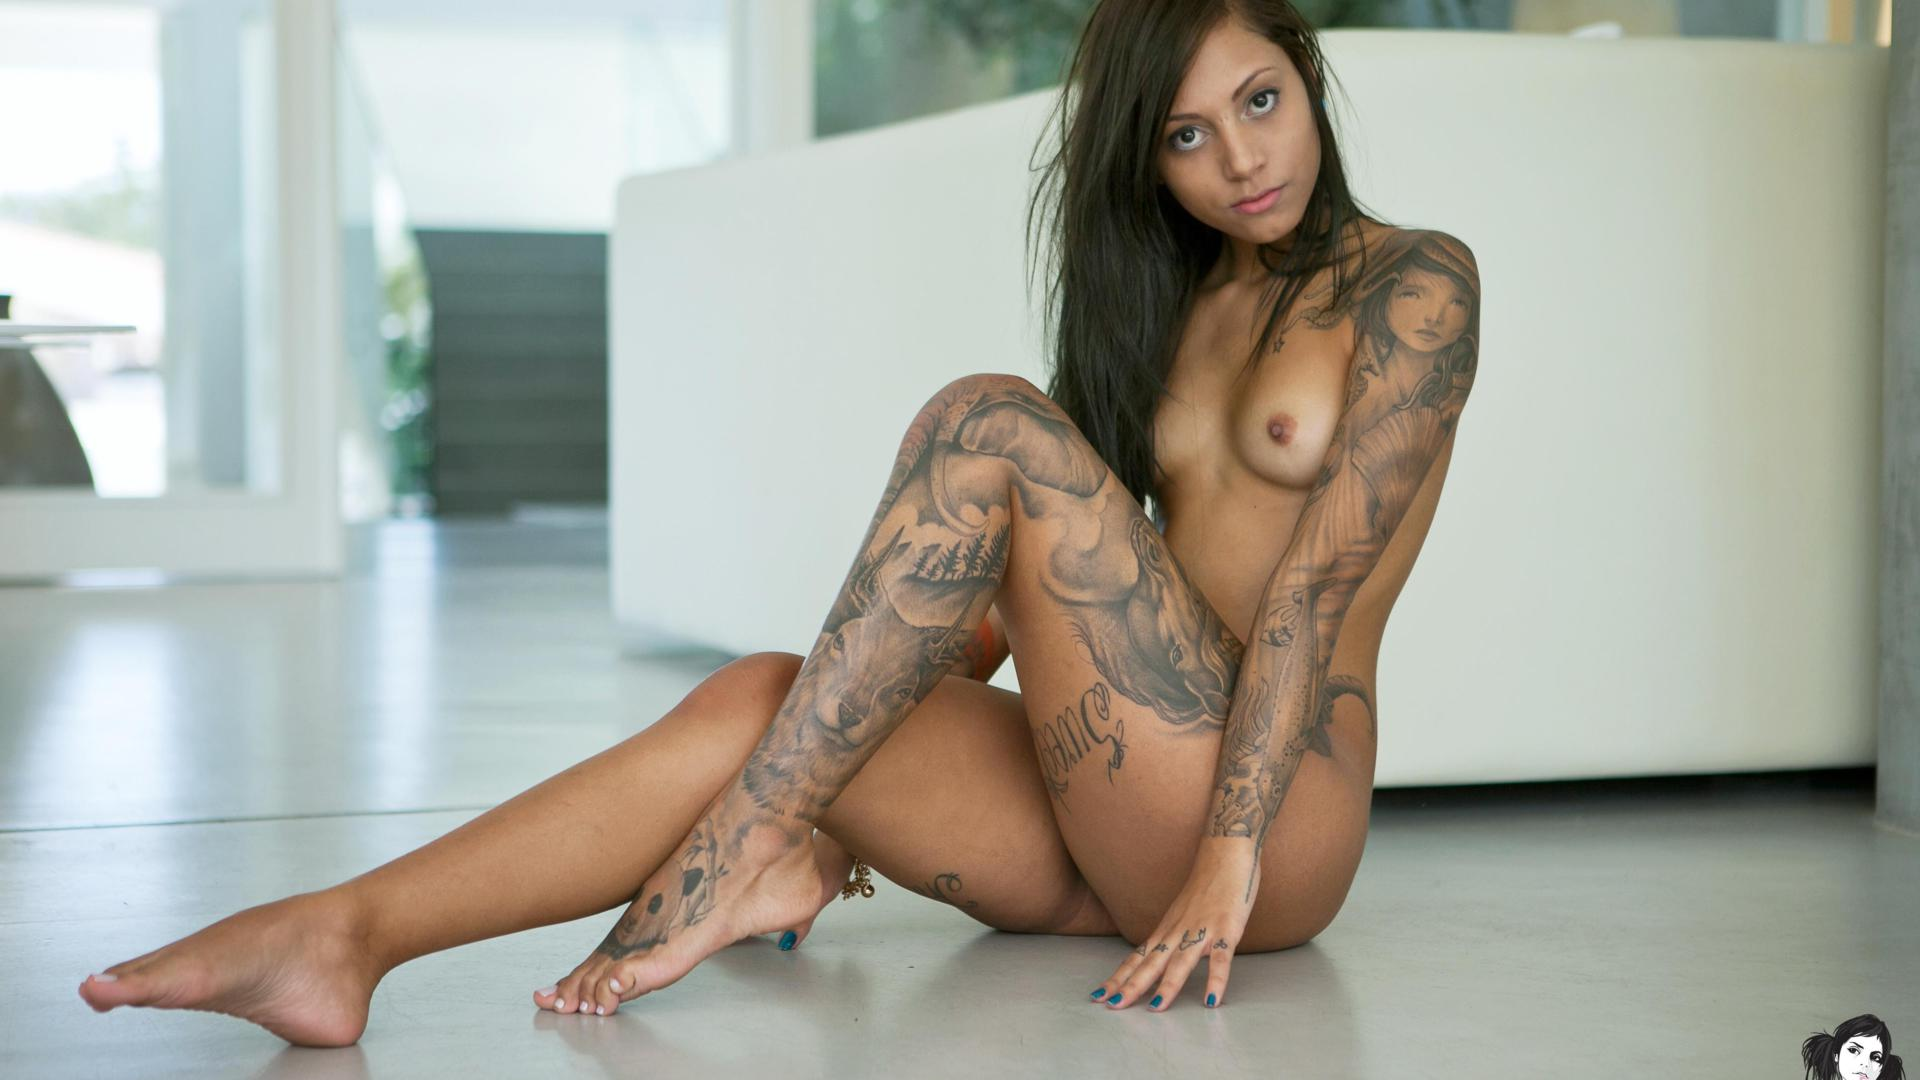 Tattoo Latina Pics